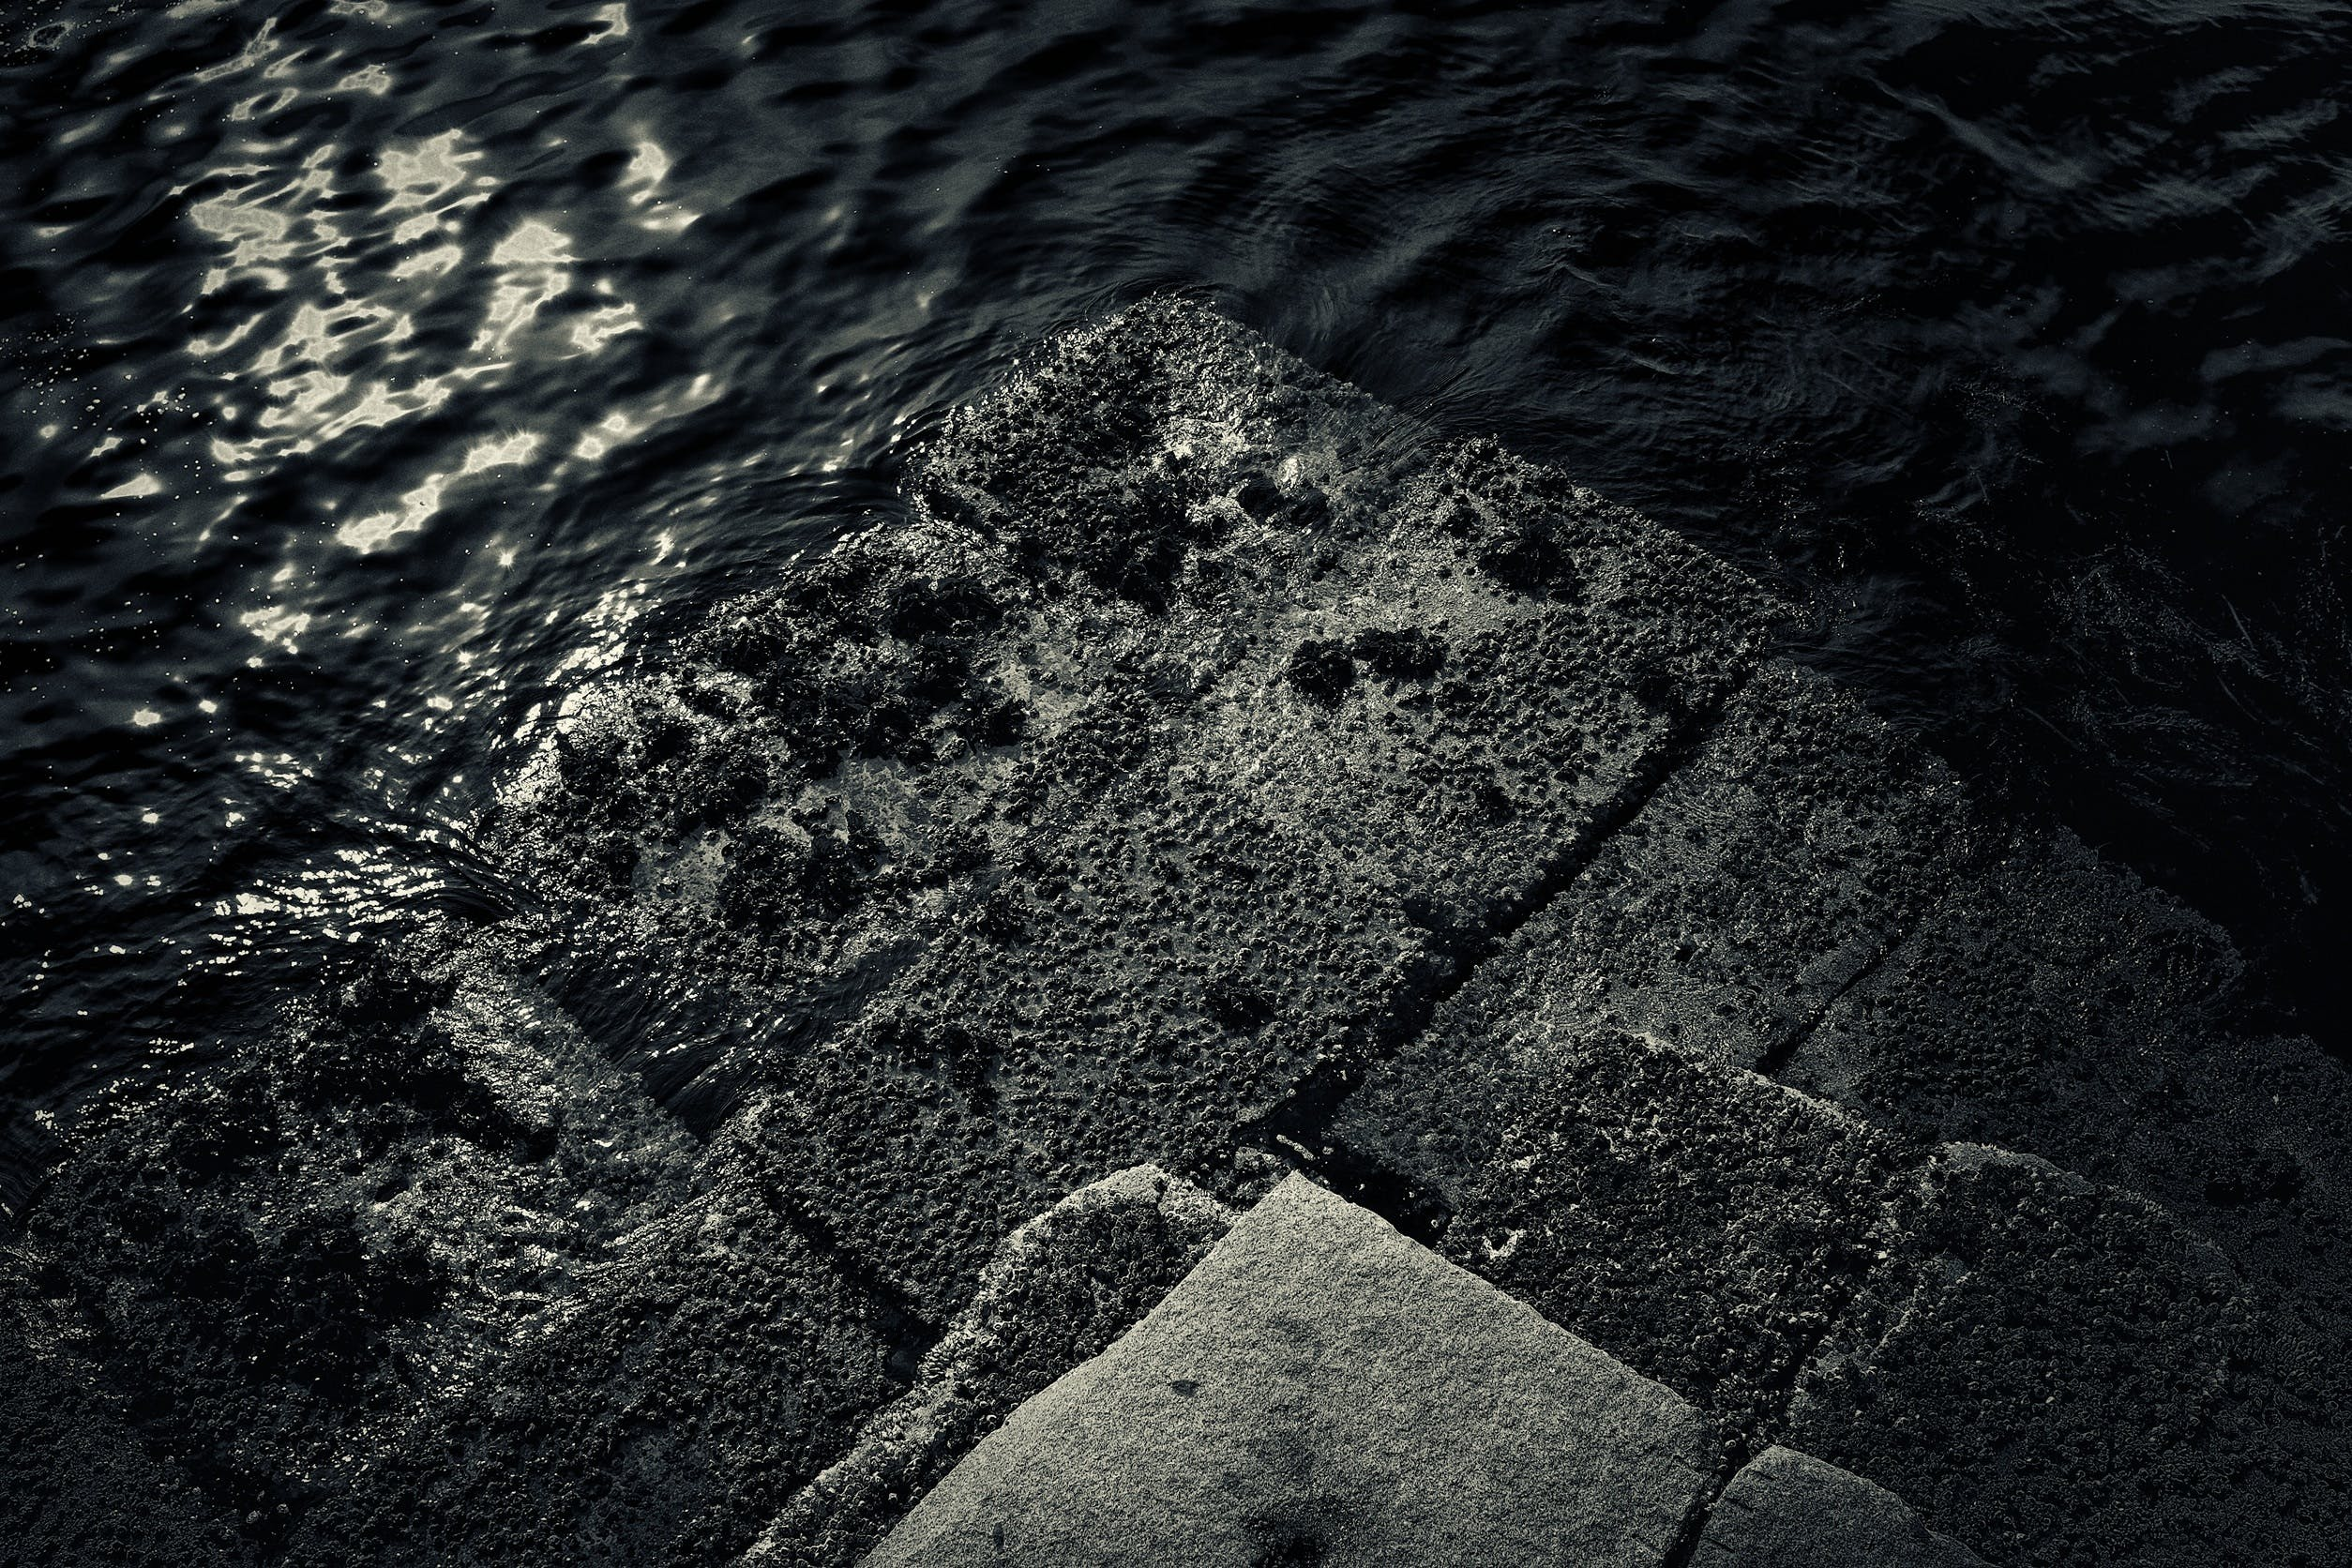 Free stock photo of water, construction, pattern, texture